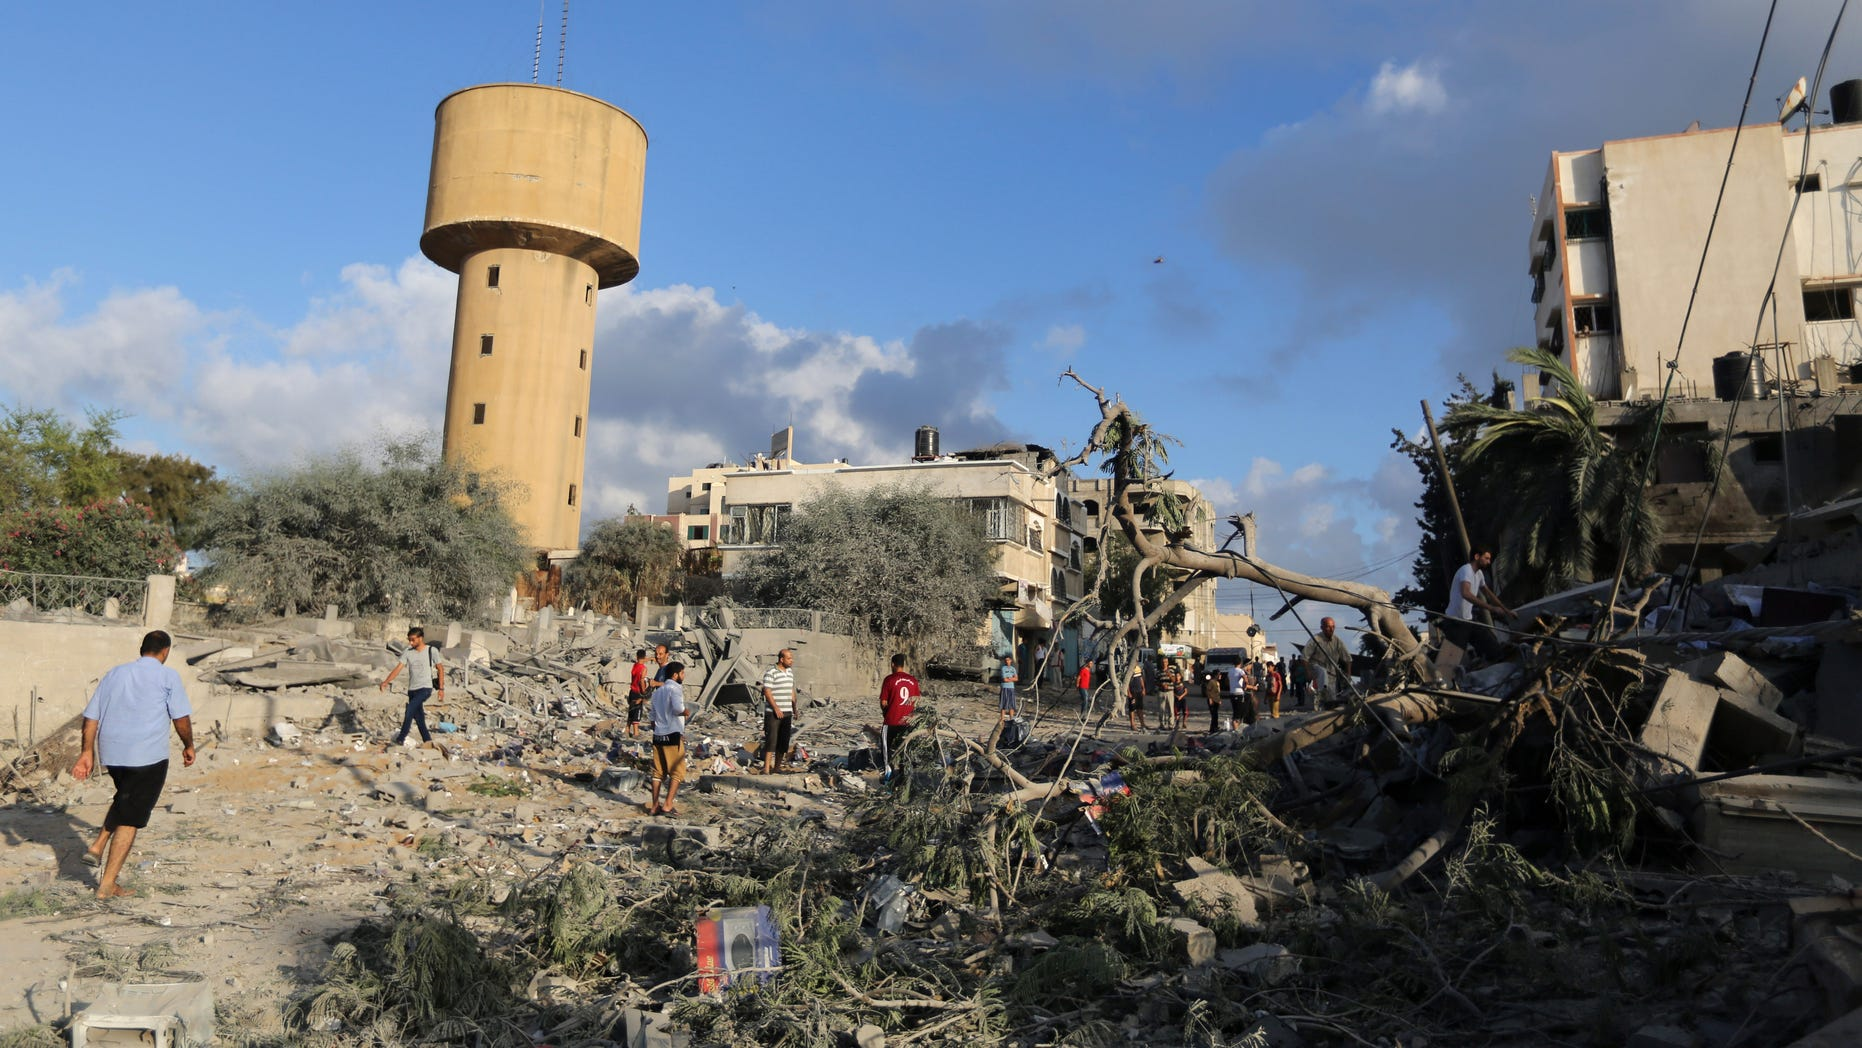 July 25, 2014 - Palestinians walk on the rubble of buildings damaged in an Israeli airstrike in Gaza City,